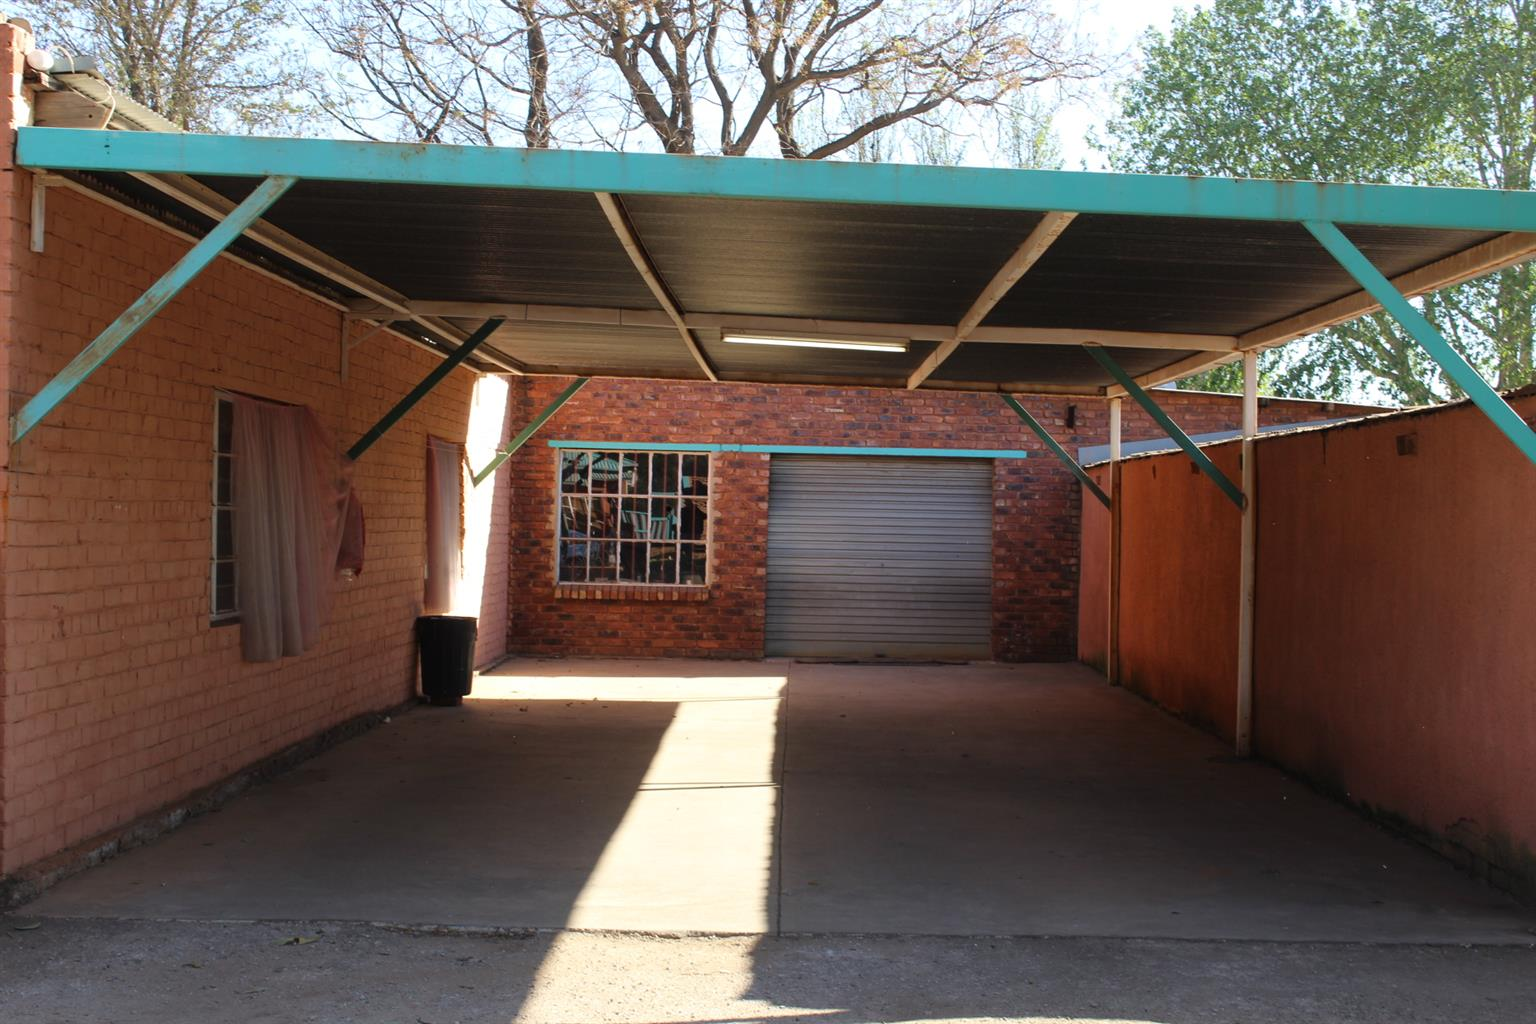 BENONI-PETIT-LIGHT INDUSTRIAL USAGE--SOLID HOUSE-3 PHASE-GOOD OUTBLDGS